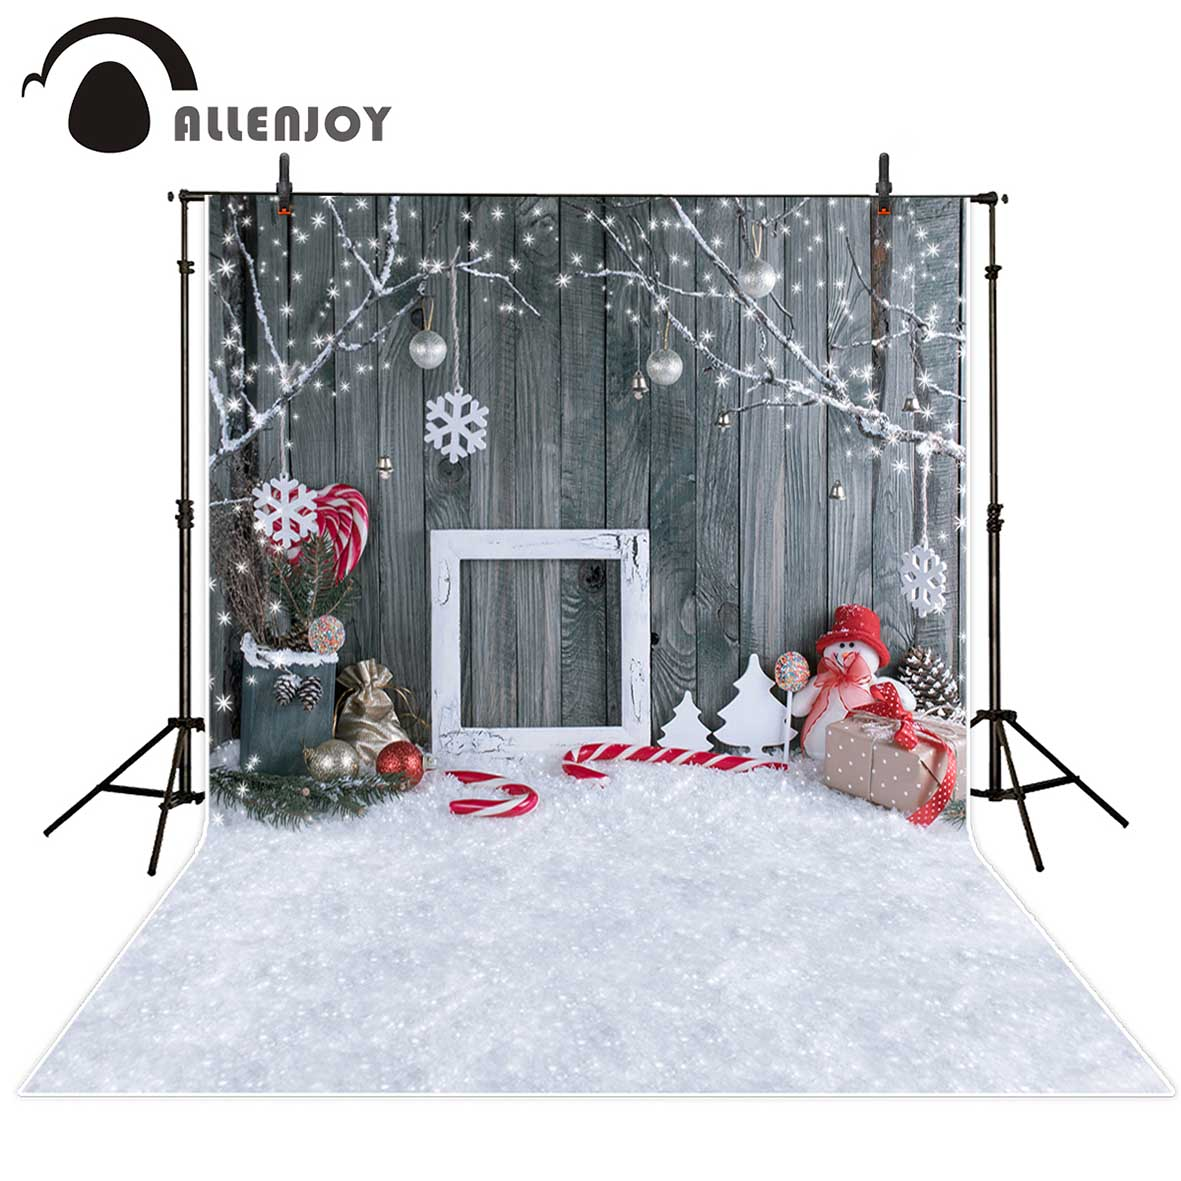 Allenjoy photographic background Christmas snowman gray woodwall snowflake backdrop newborn photobooth vinyl photographic